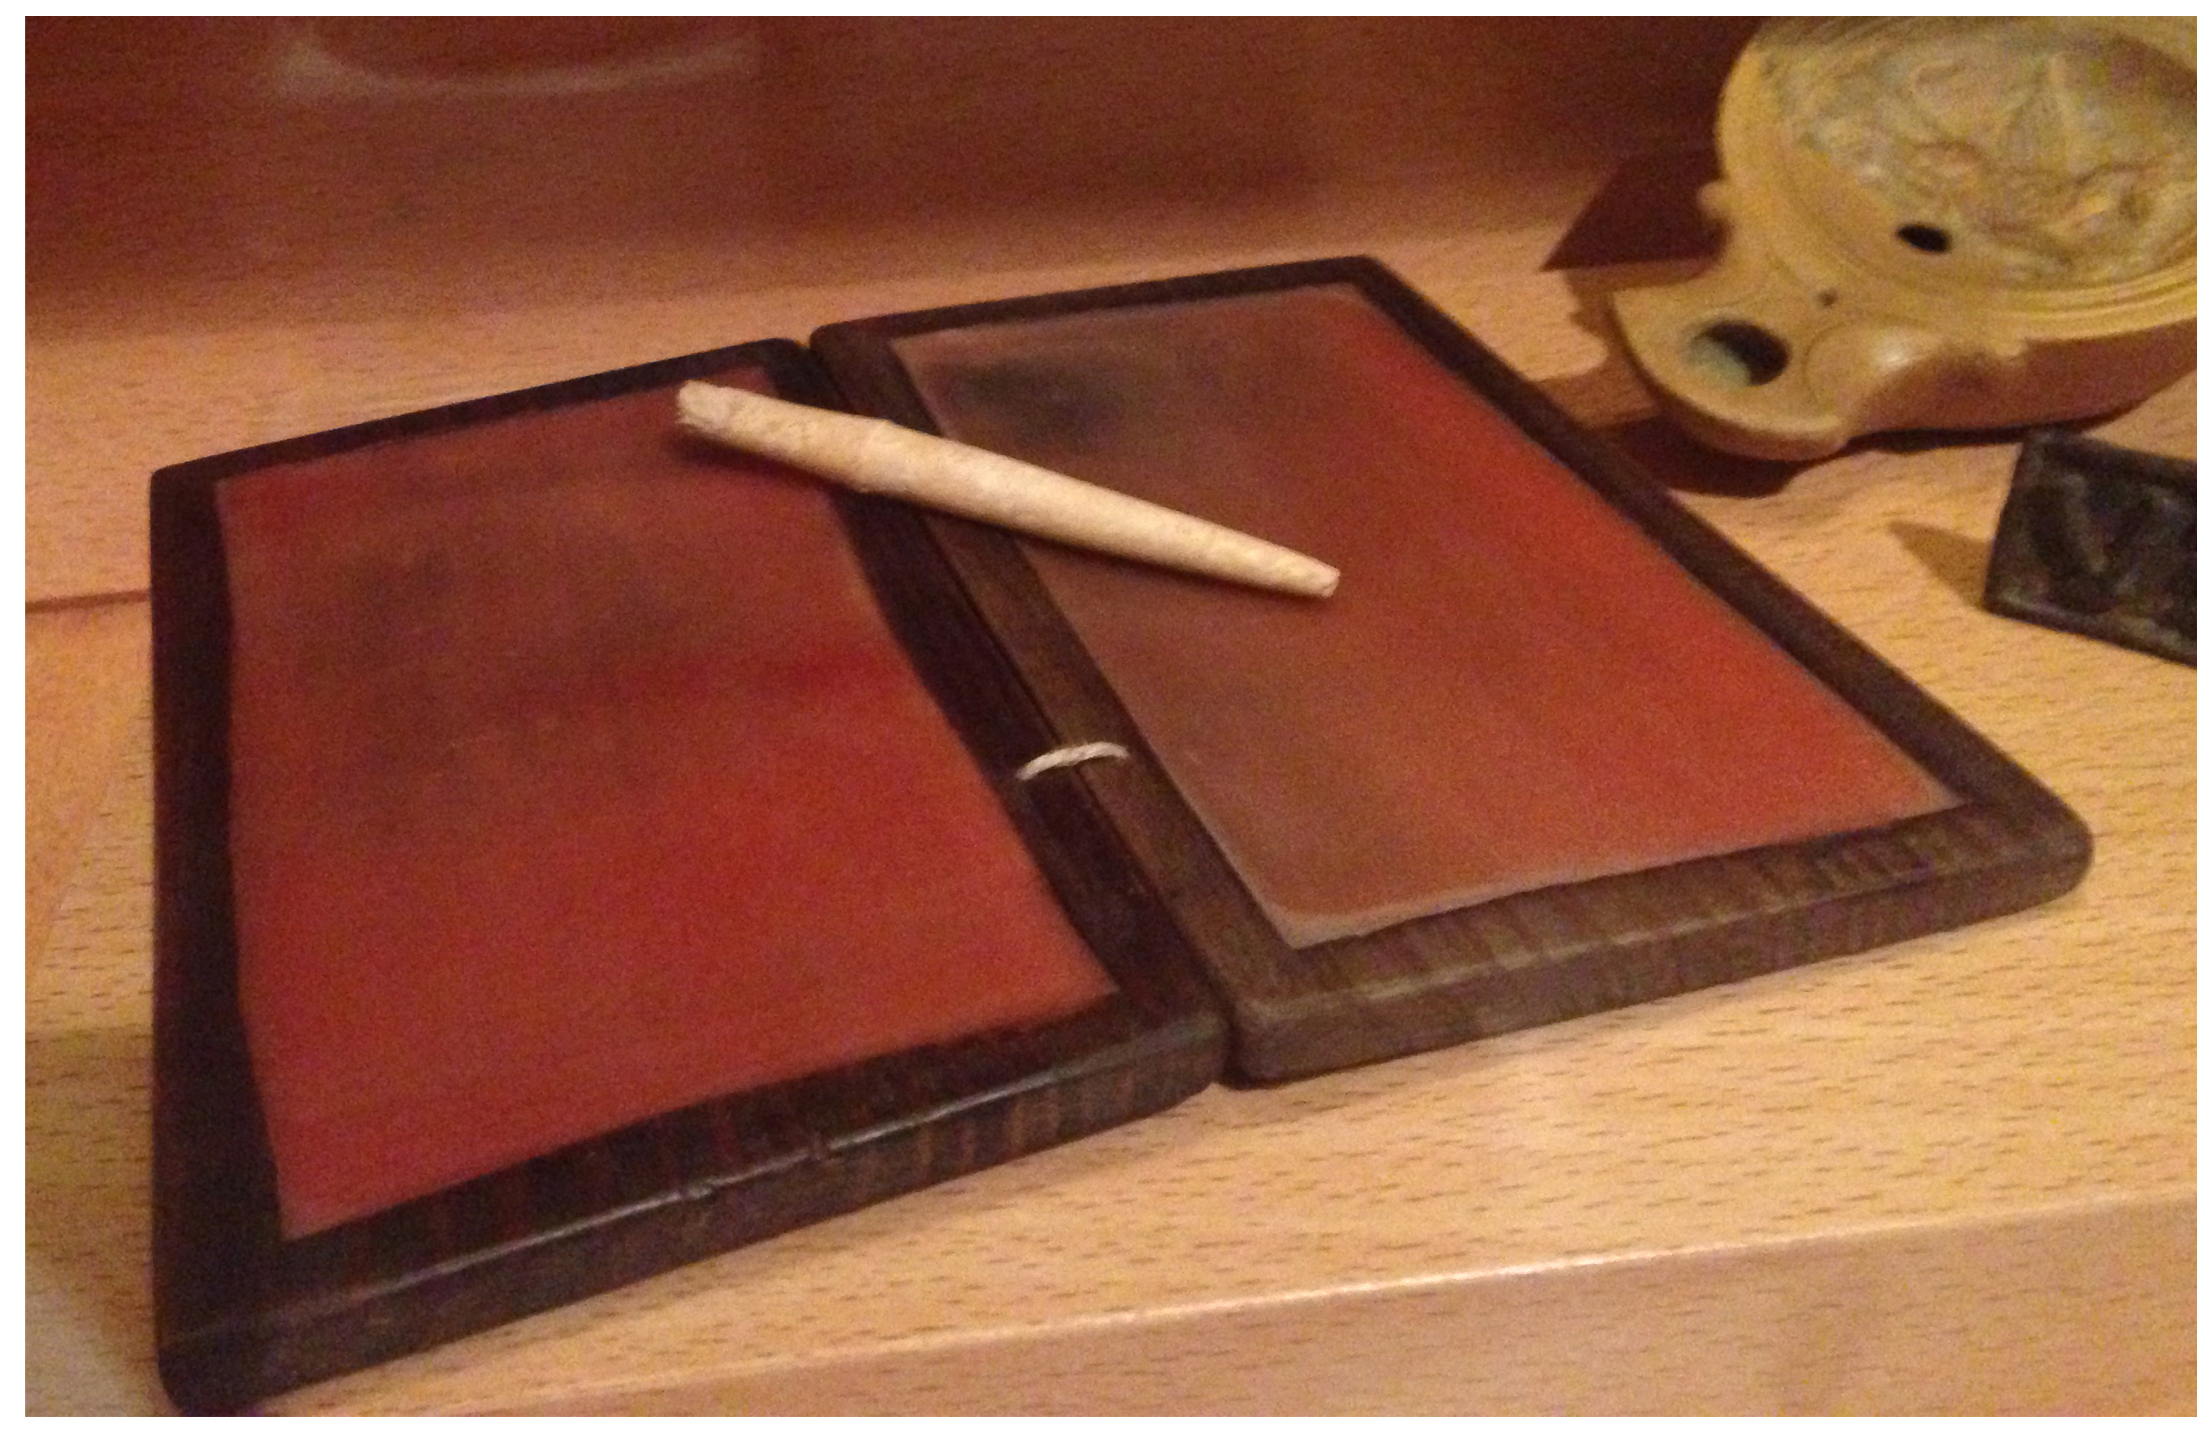 5wax tablet images blog.jpg